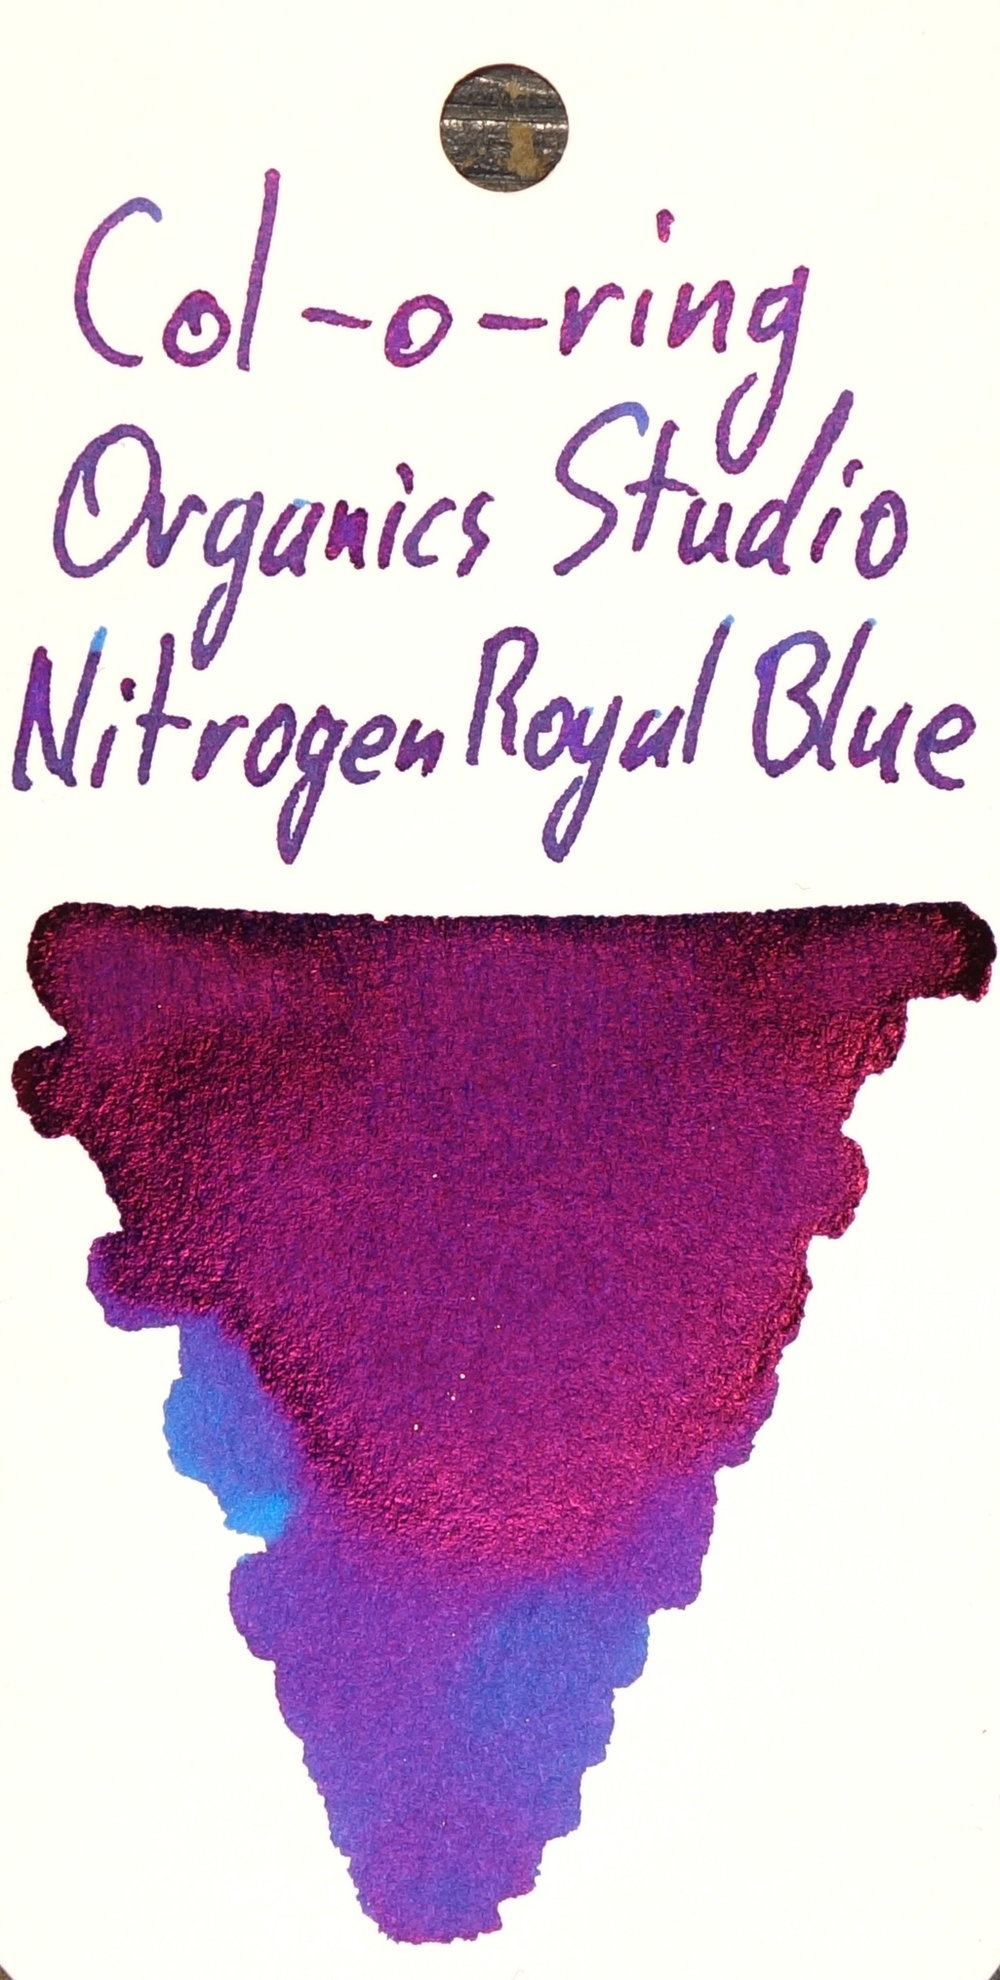 Organics Studio Nitrogen Royal Blue Col-o-ring.JPG